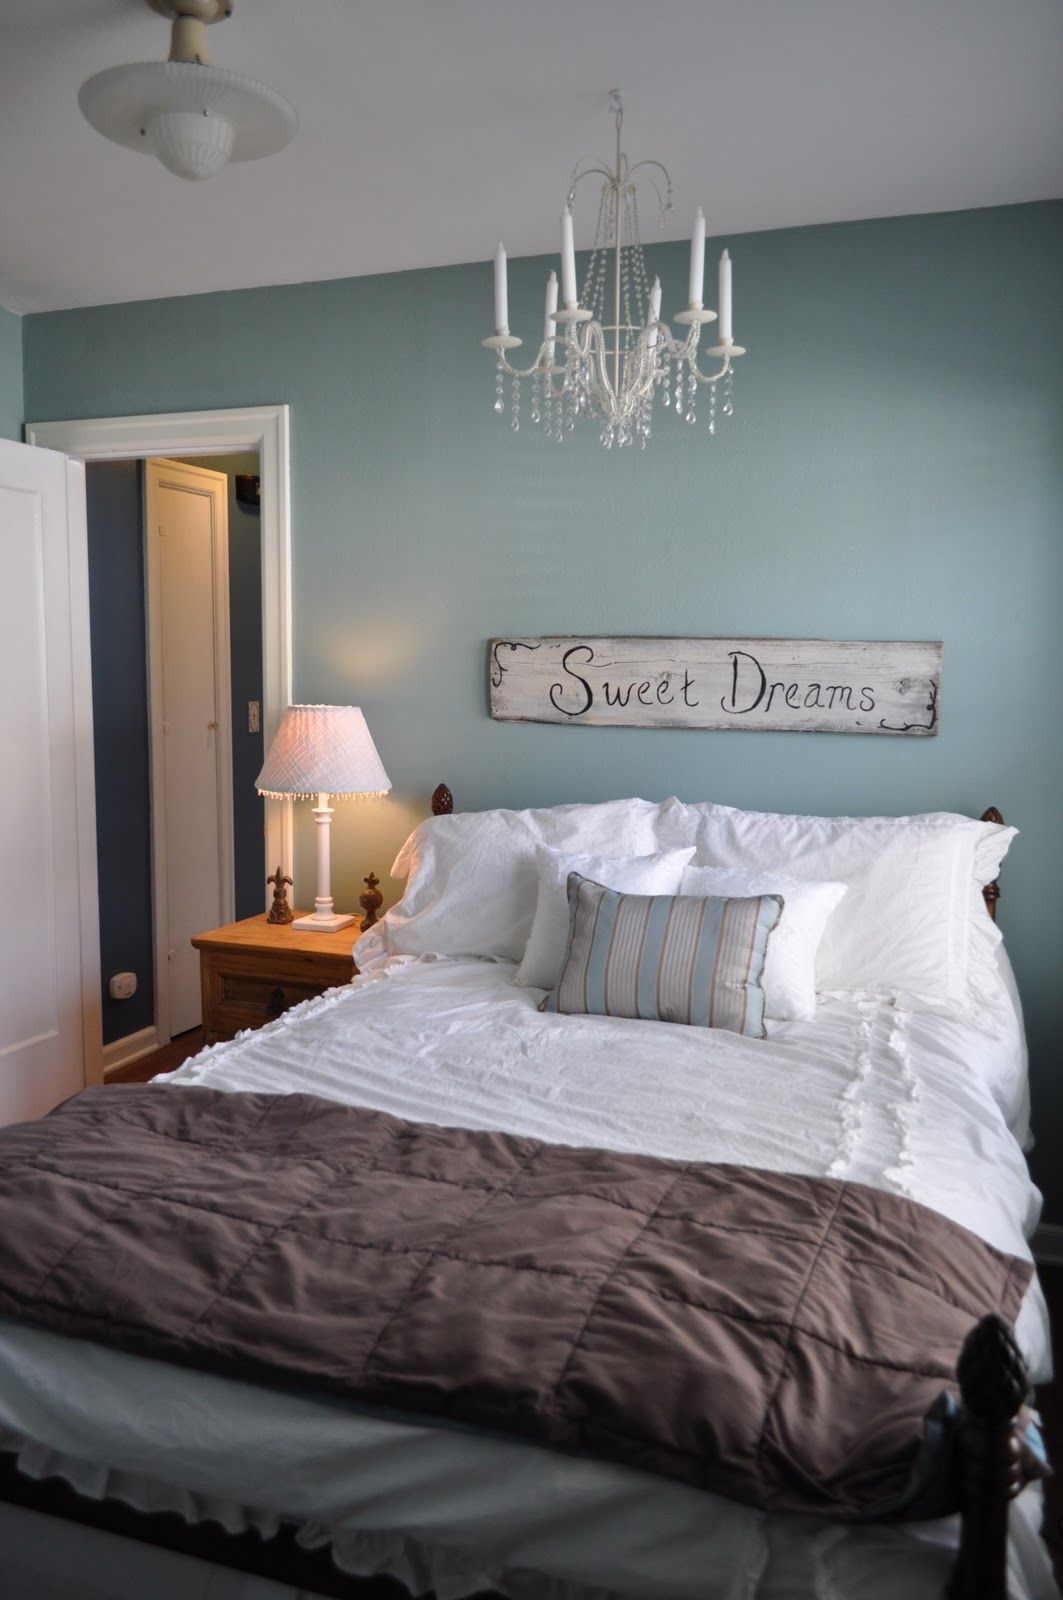 Wunderbar Bedroom   Wall Painting. (Love This Color, Just Reminds Me Of The Beach)